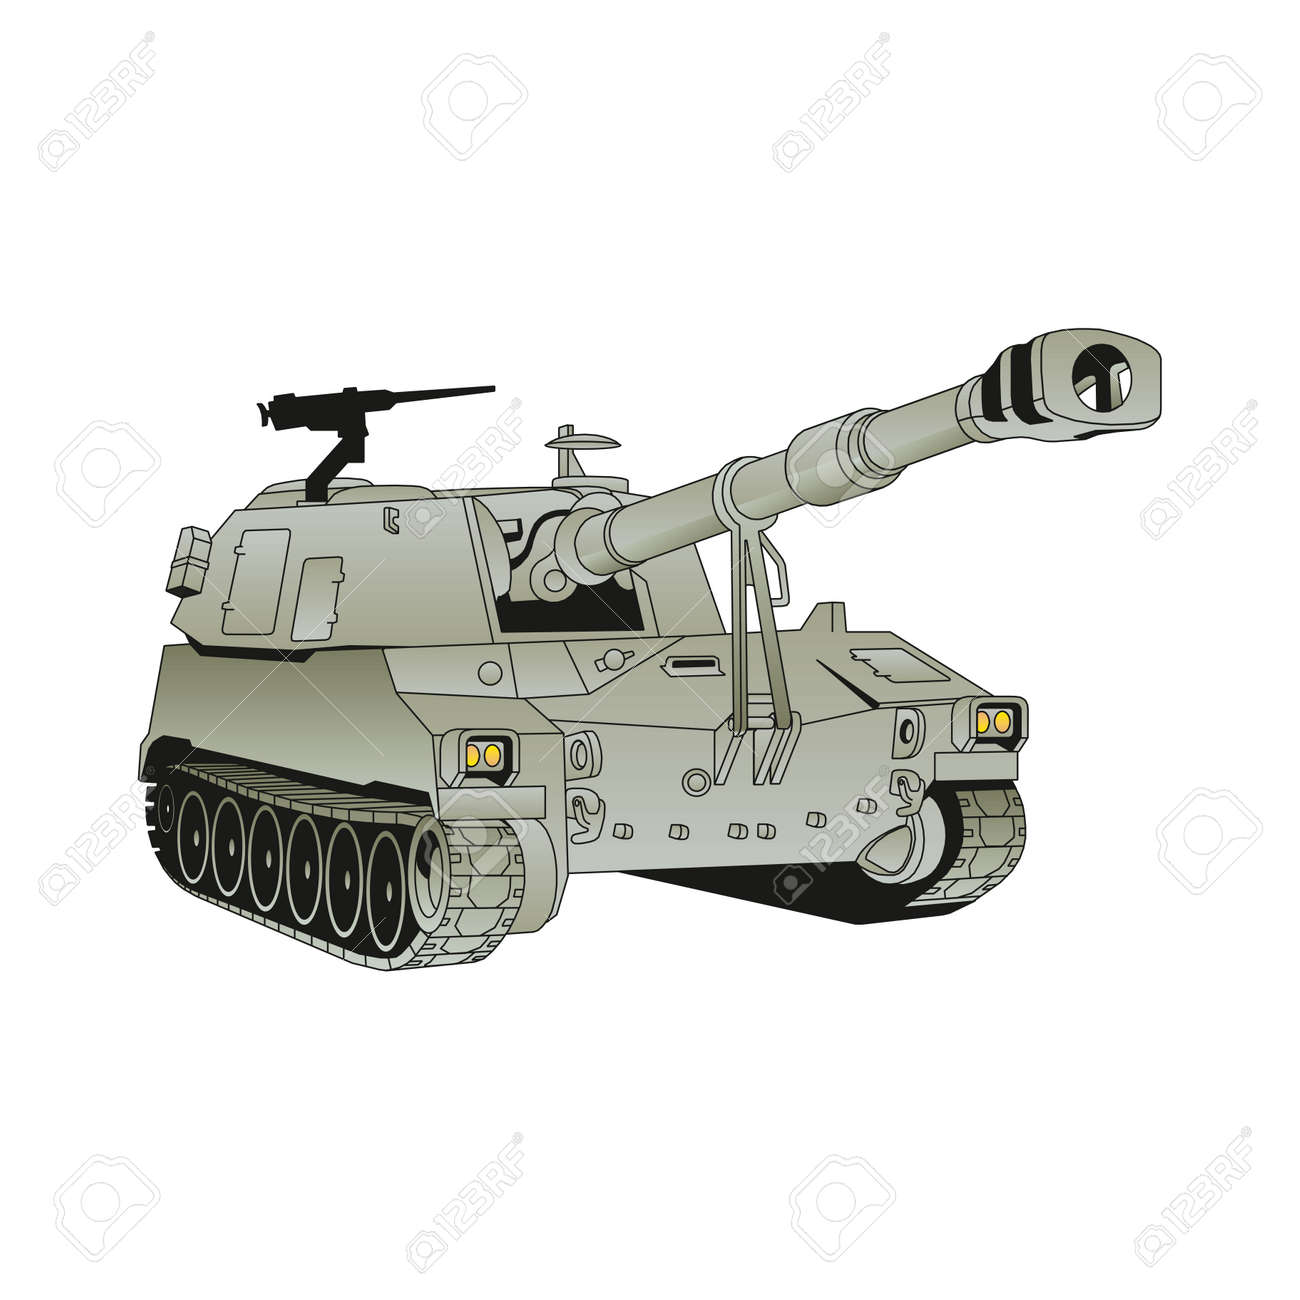 tank isolated on white background vector military machine tank royalty free cliparts vectors and stock illustration image 143518270 123rf com